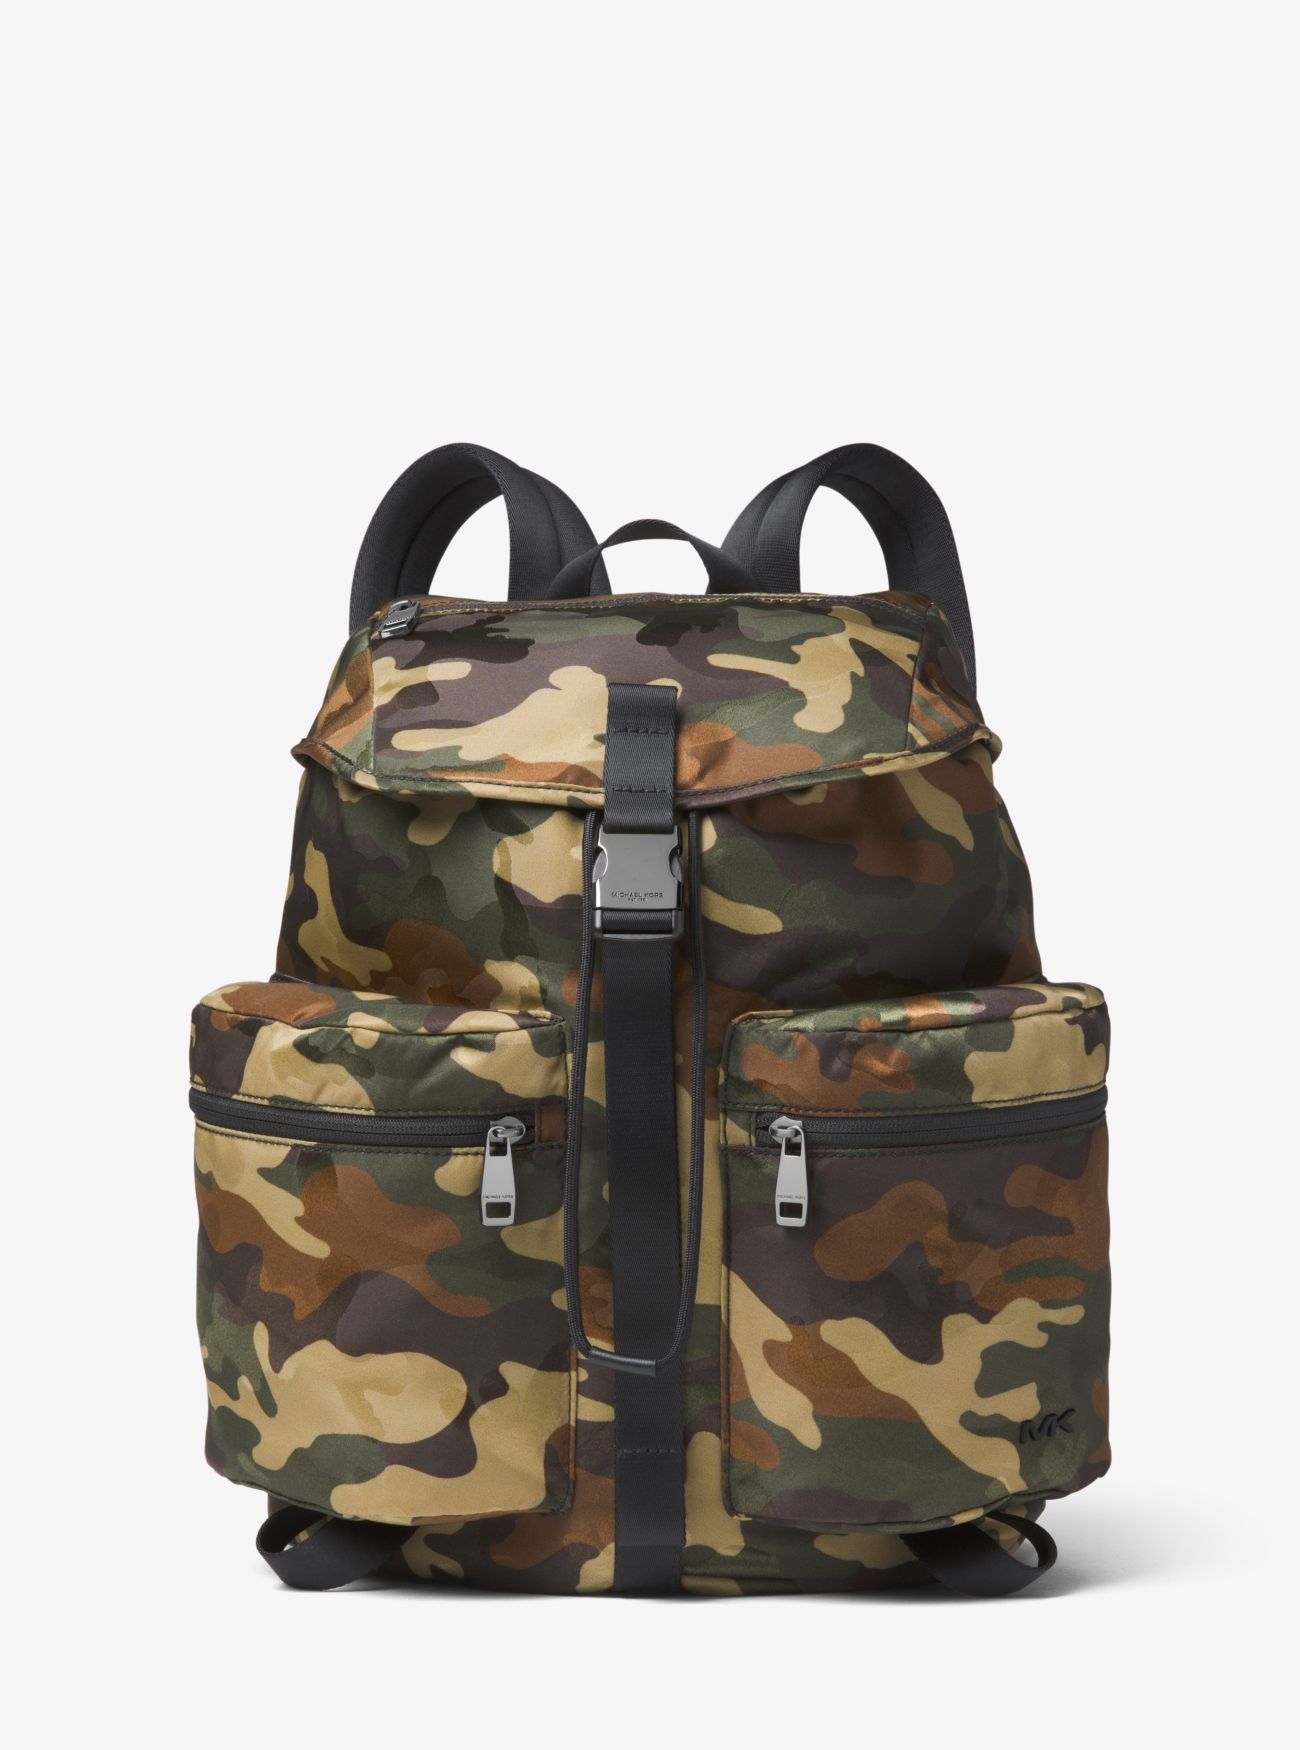 809d6f994bf9 Kent Camouflage Nylon Drawstring Backpack